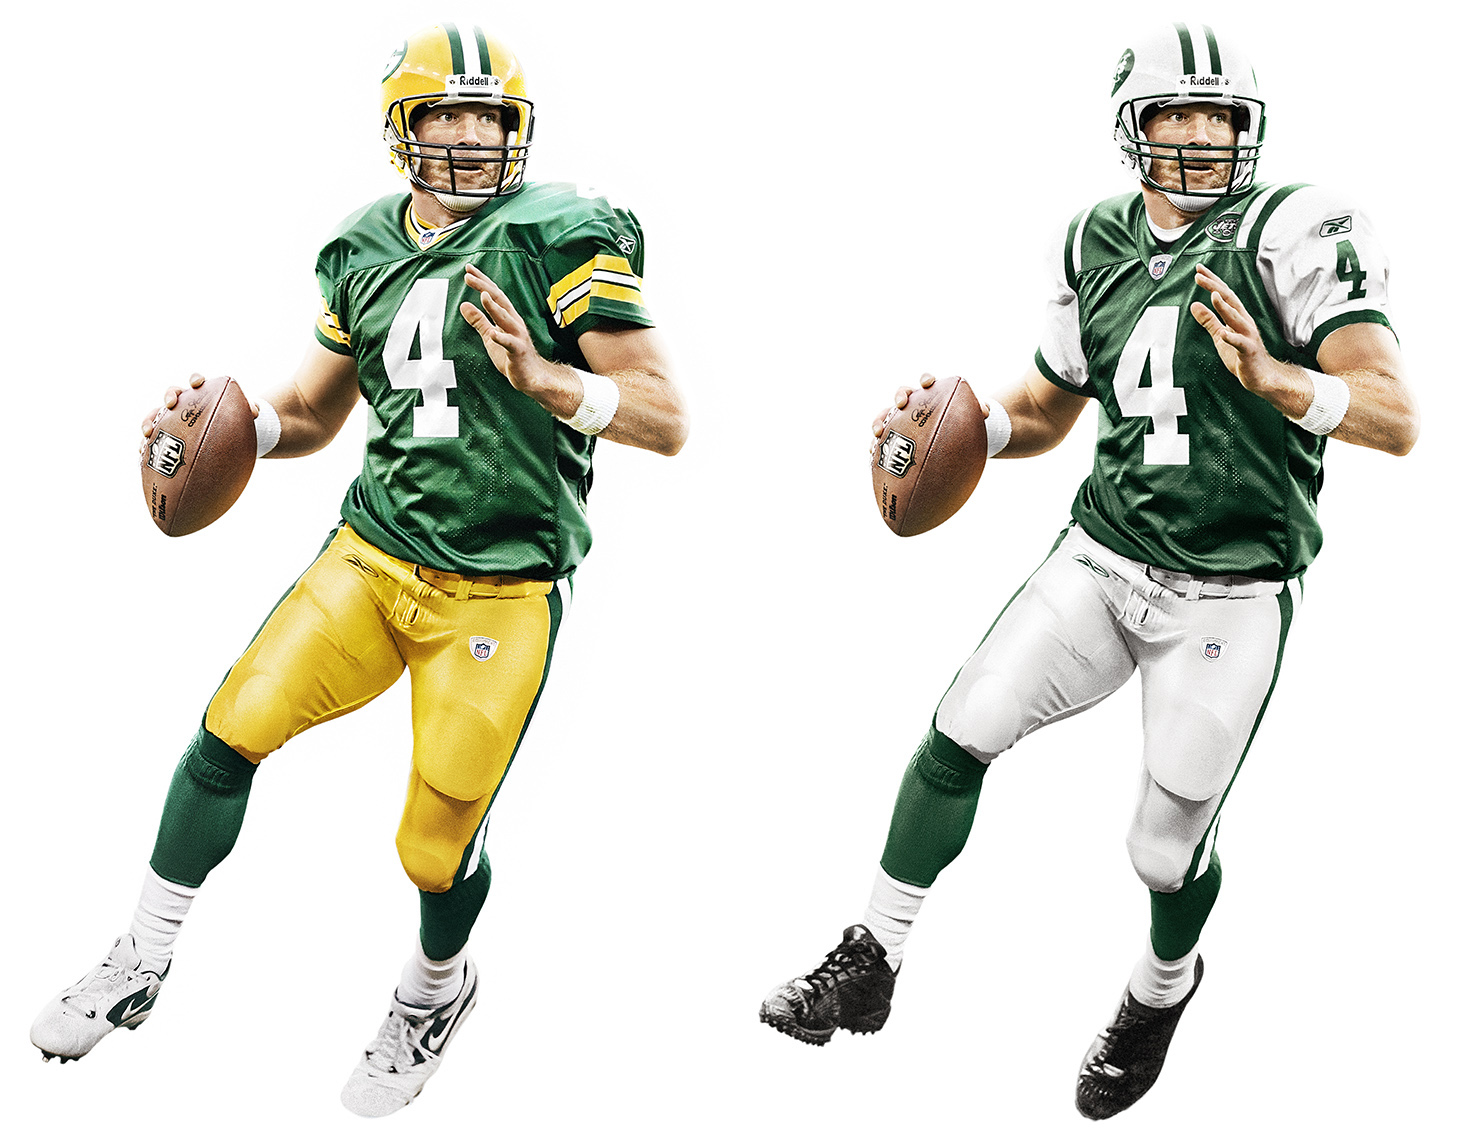 EA_Sports_Madden09_Favre_Packers_Jets